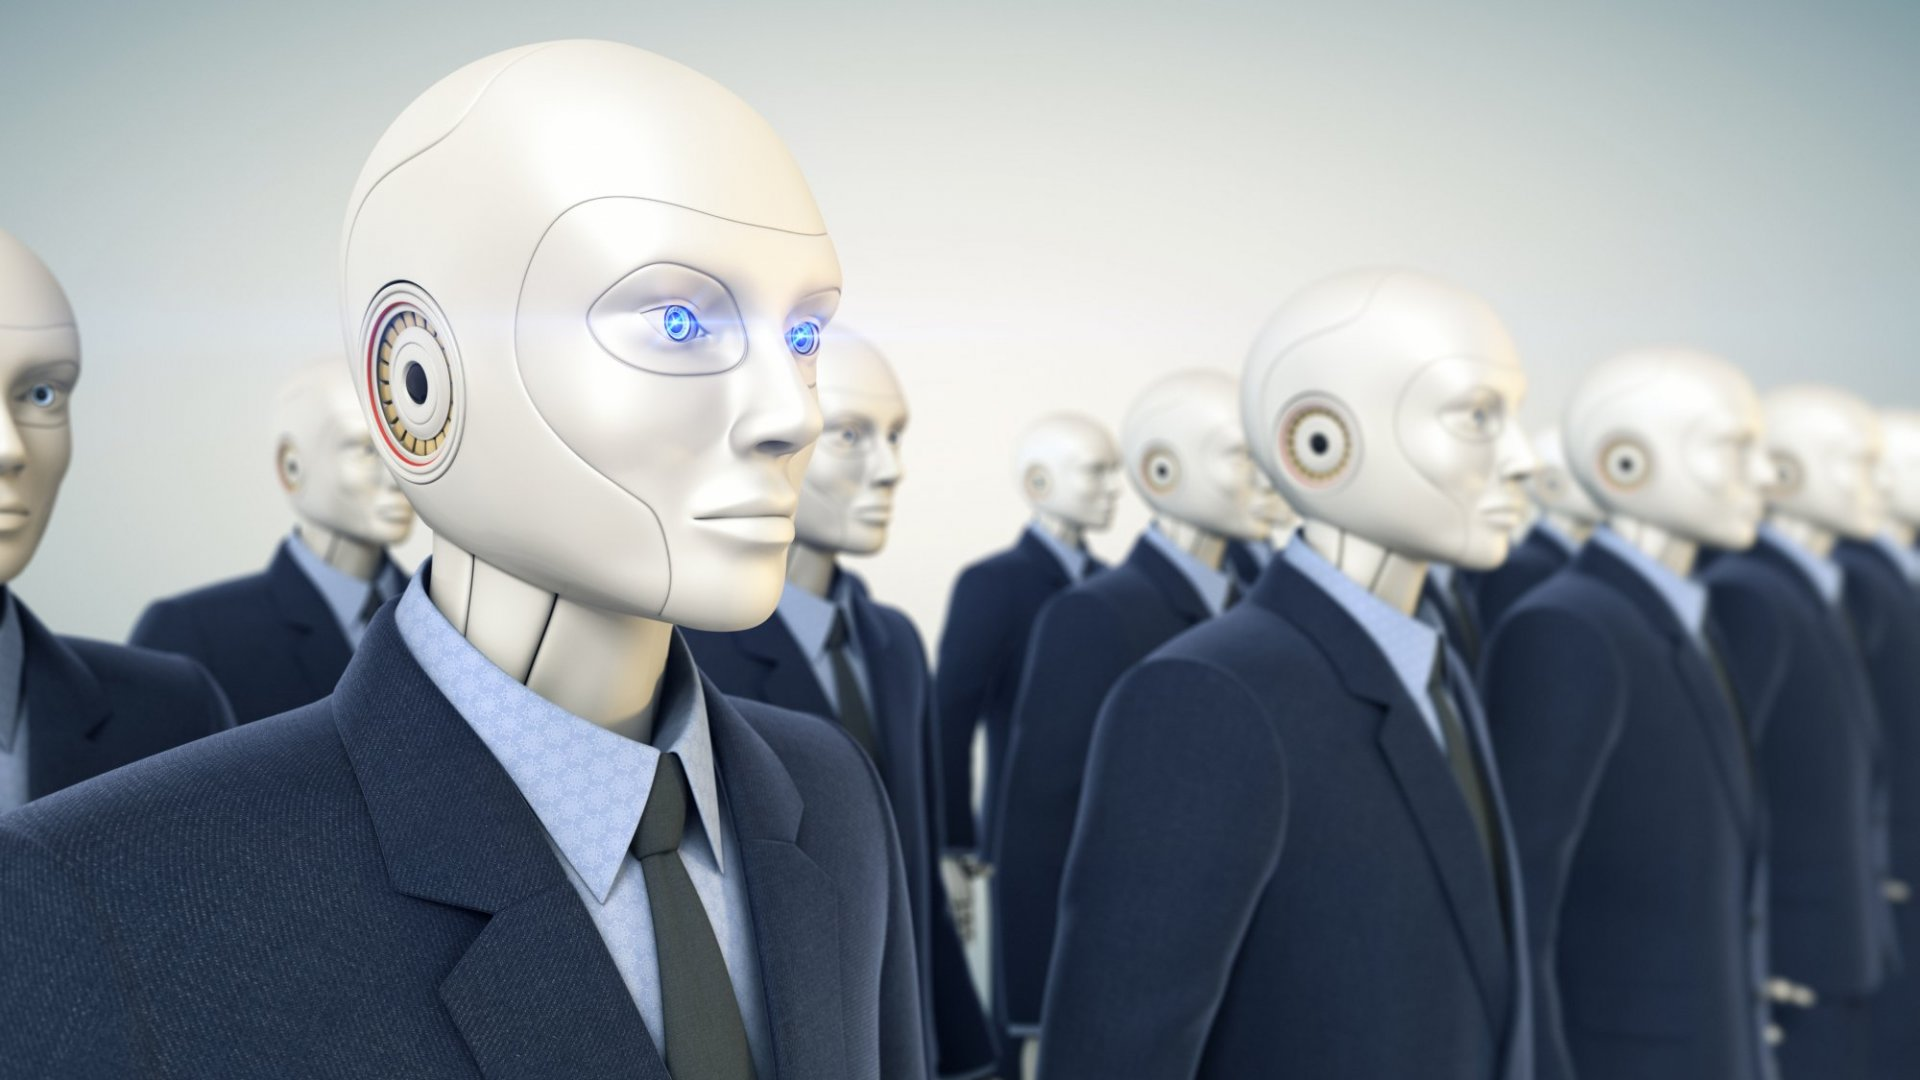 Study Says, Stop Worrying About Robots Taking Your Job. Do This Instead...